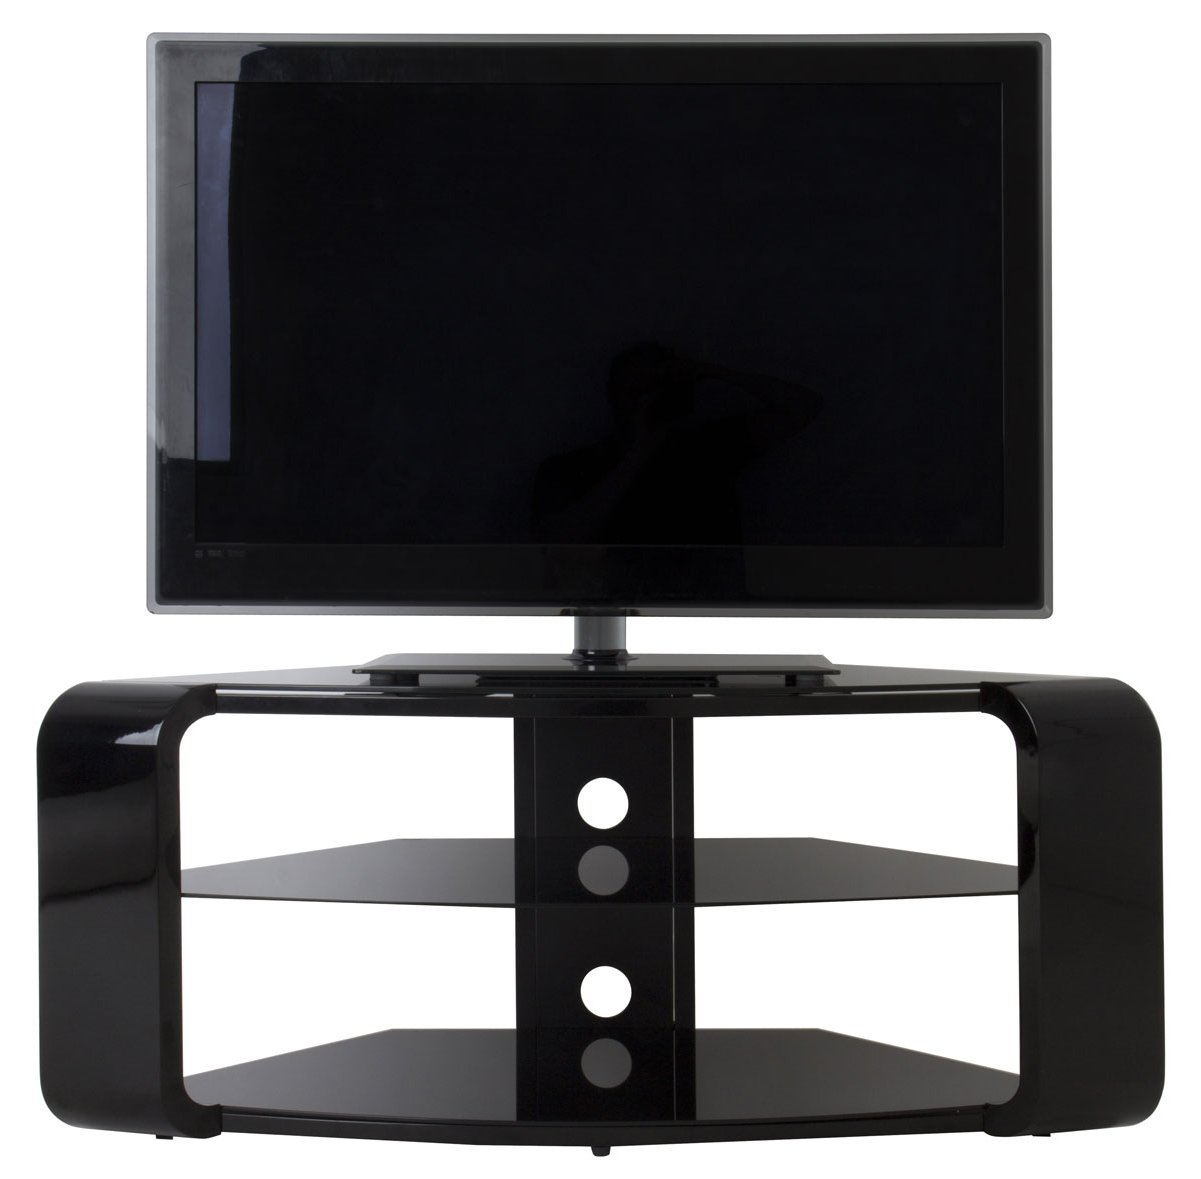 AVF FS1174COB Como Black TV Stand : products19970fs1174cob1 from www.theplasmacentre.com size 1201 x 1179 jpeg 79kB